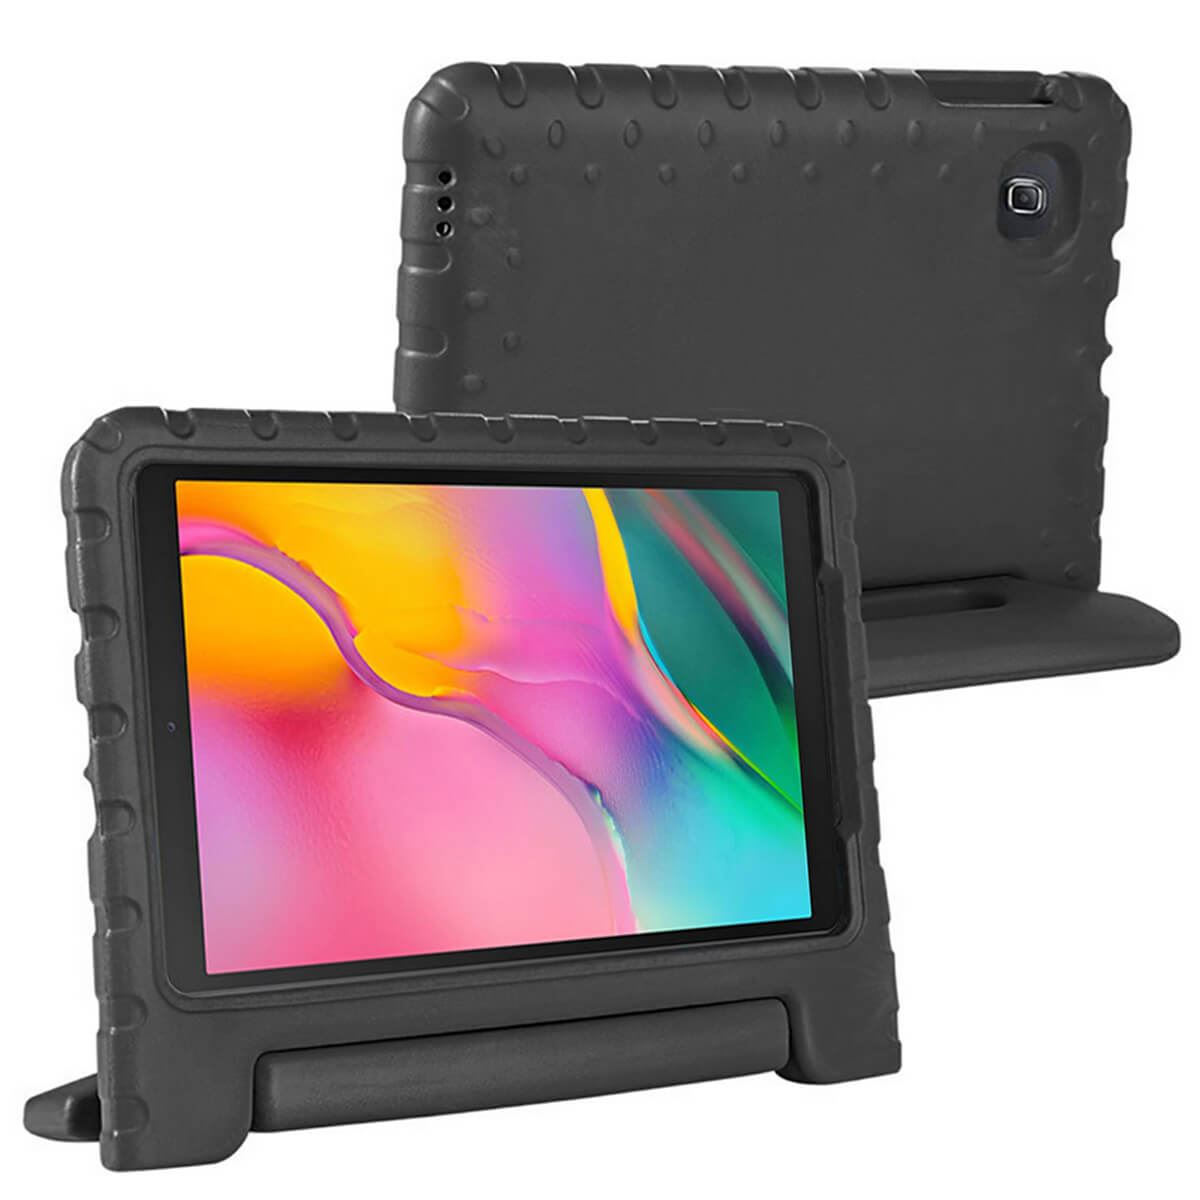 Shockproof-Protective-Case-Samsung-Galaxy-Tab-A-10-1-2016-Kids-Cover thumbnail 13